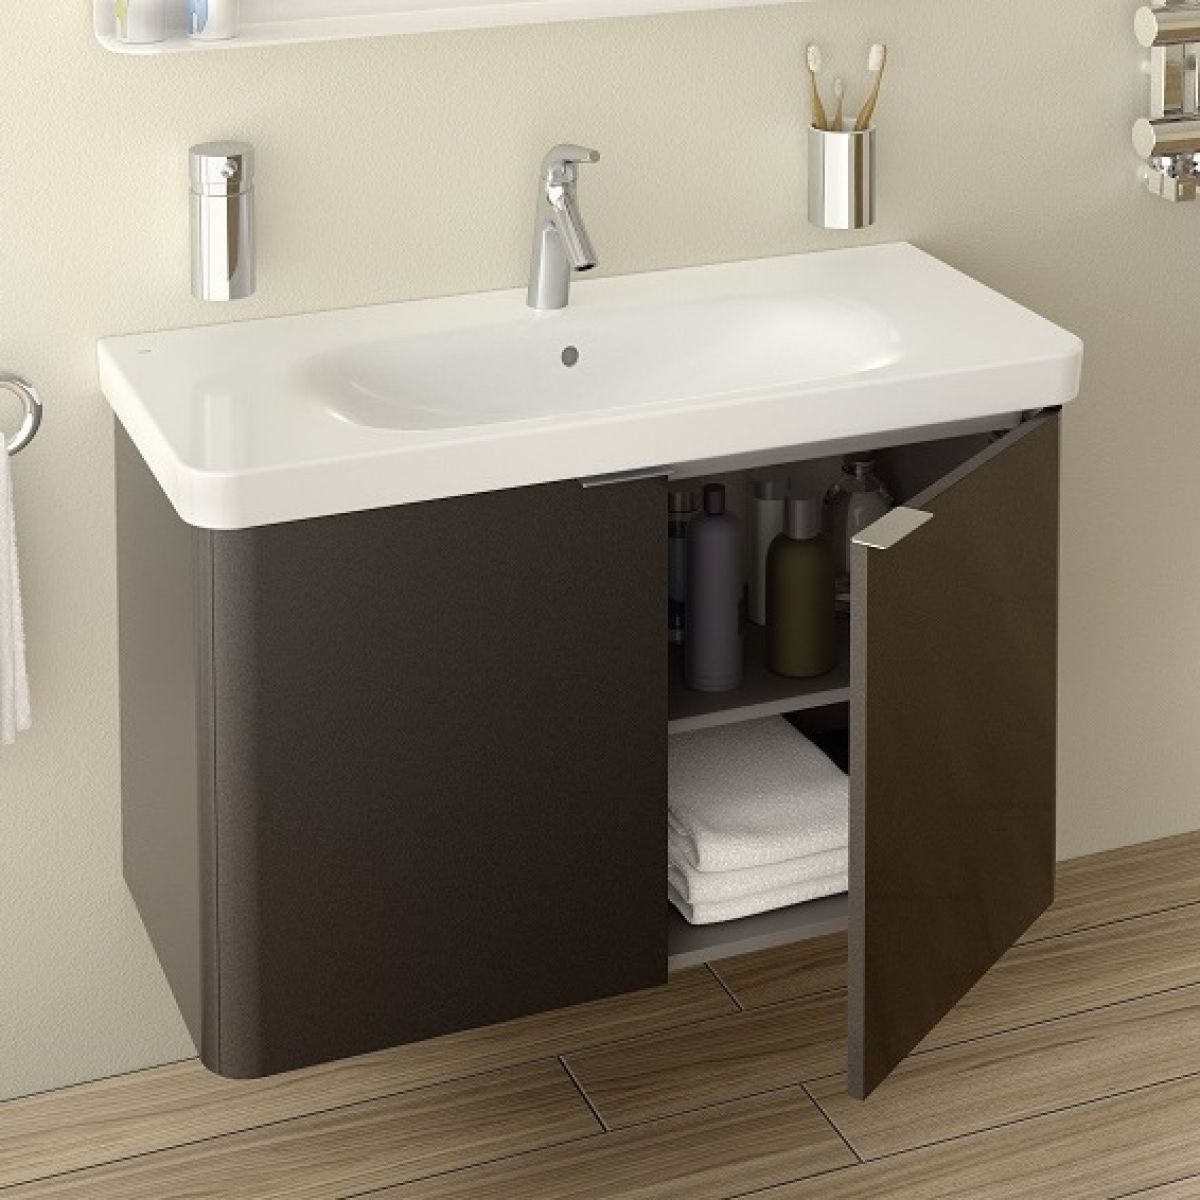 Vitra Nest Wall Hung Unit And Basin 3 Sizes 4 Colours